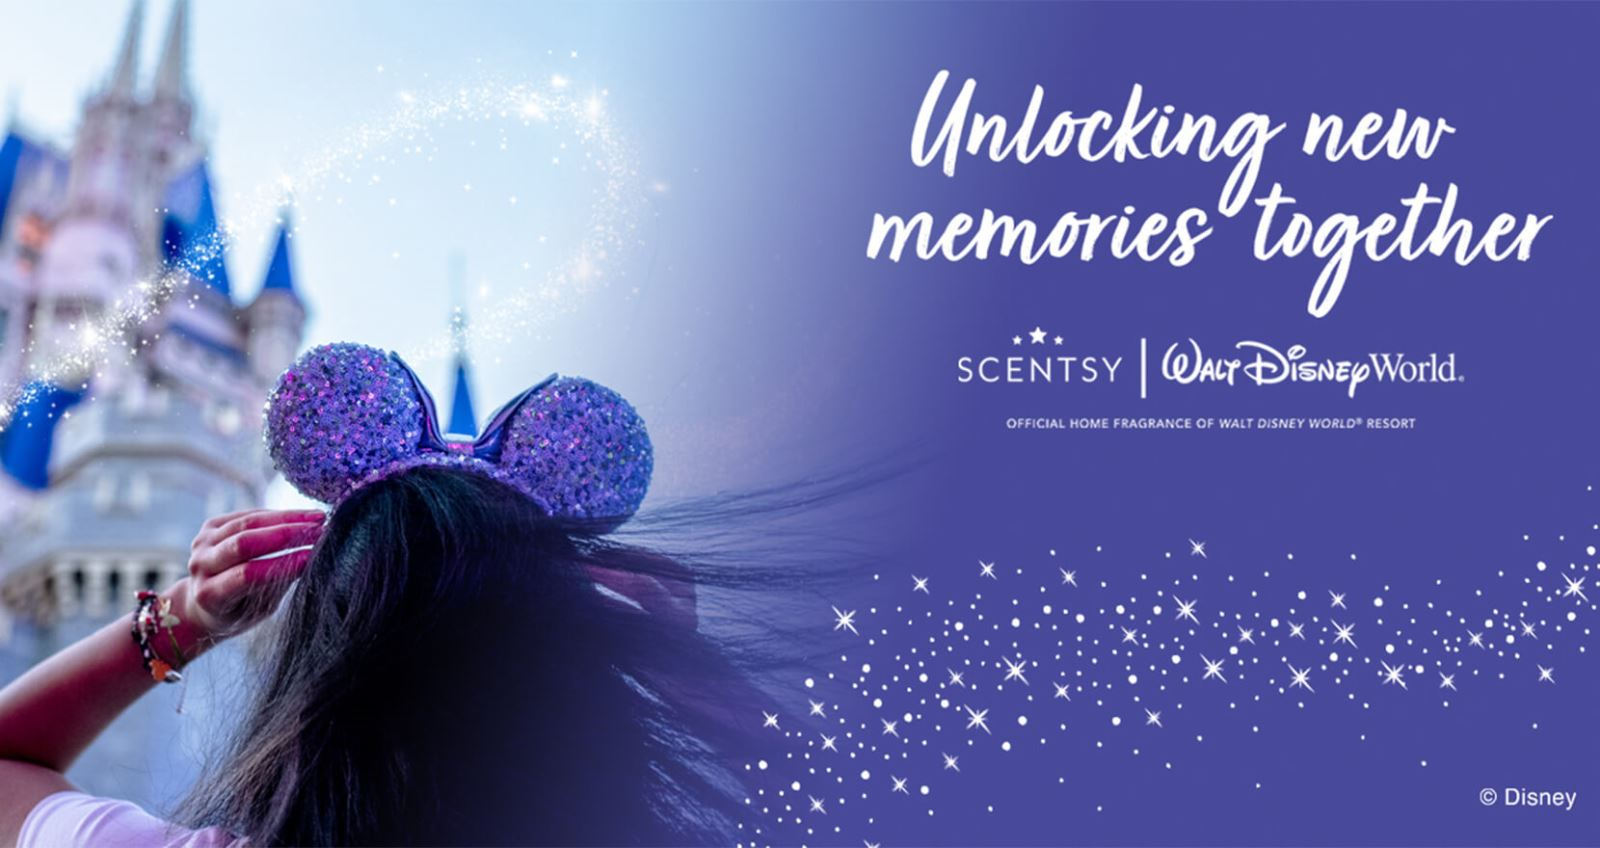 Something new coming to Fantasyland as Scentsy becomes the Official Home Fragrance of Walt Disney World Resort